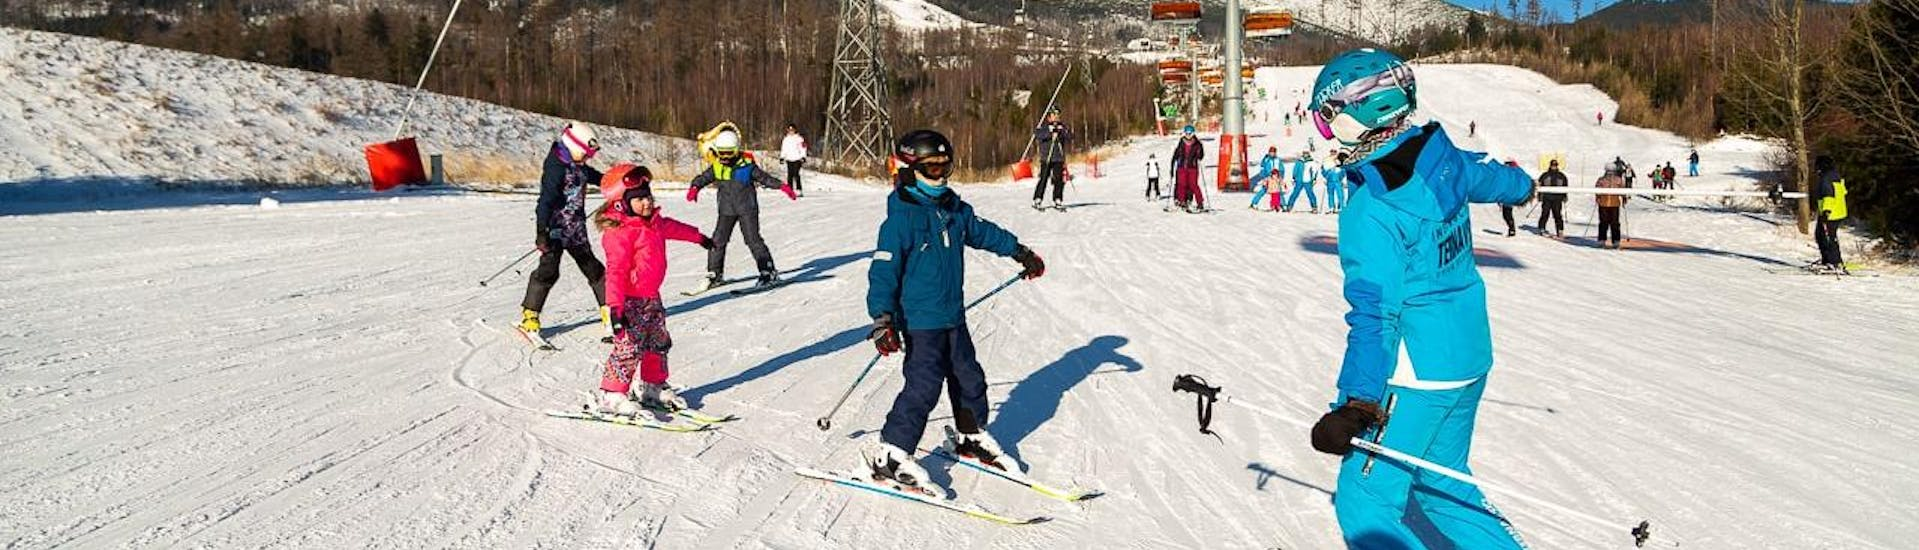 During the Ski Lessons for Kids (from 4 years) - Long Lesson, a group of children is enjoying skiing under the supervision of an experienced ski instructor from the ski school Ternavski Snow Academy Tatranska Lomnica.